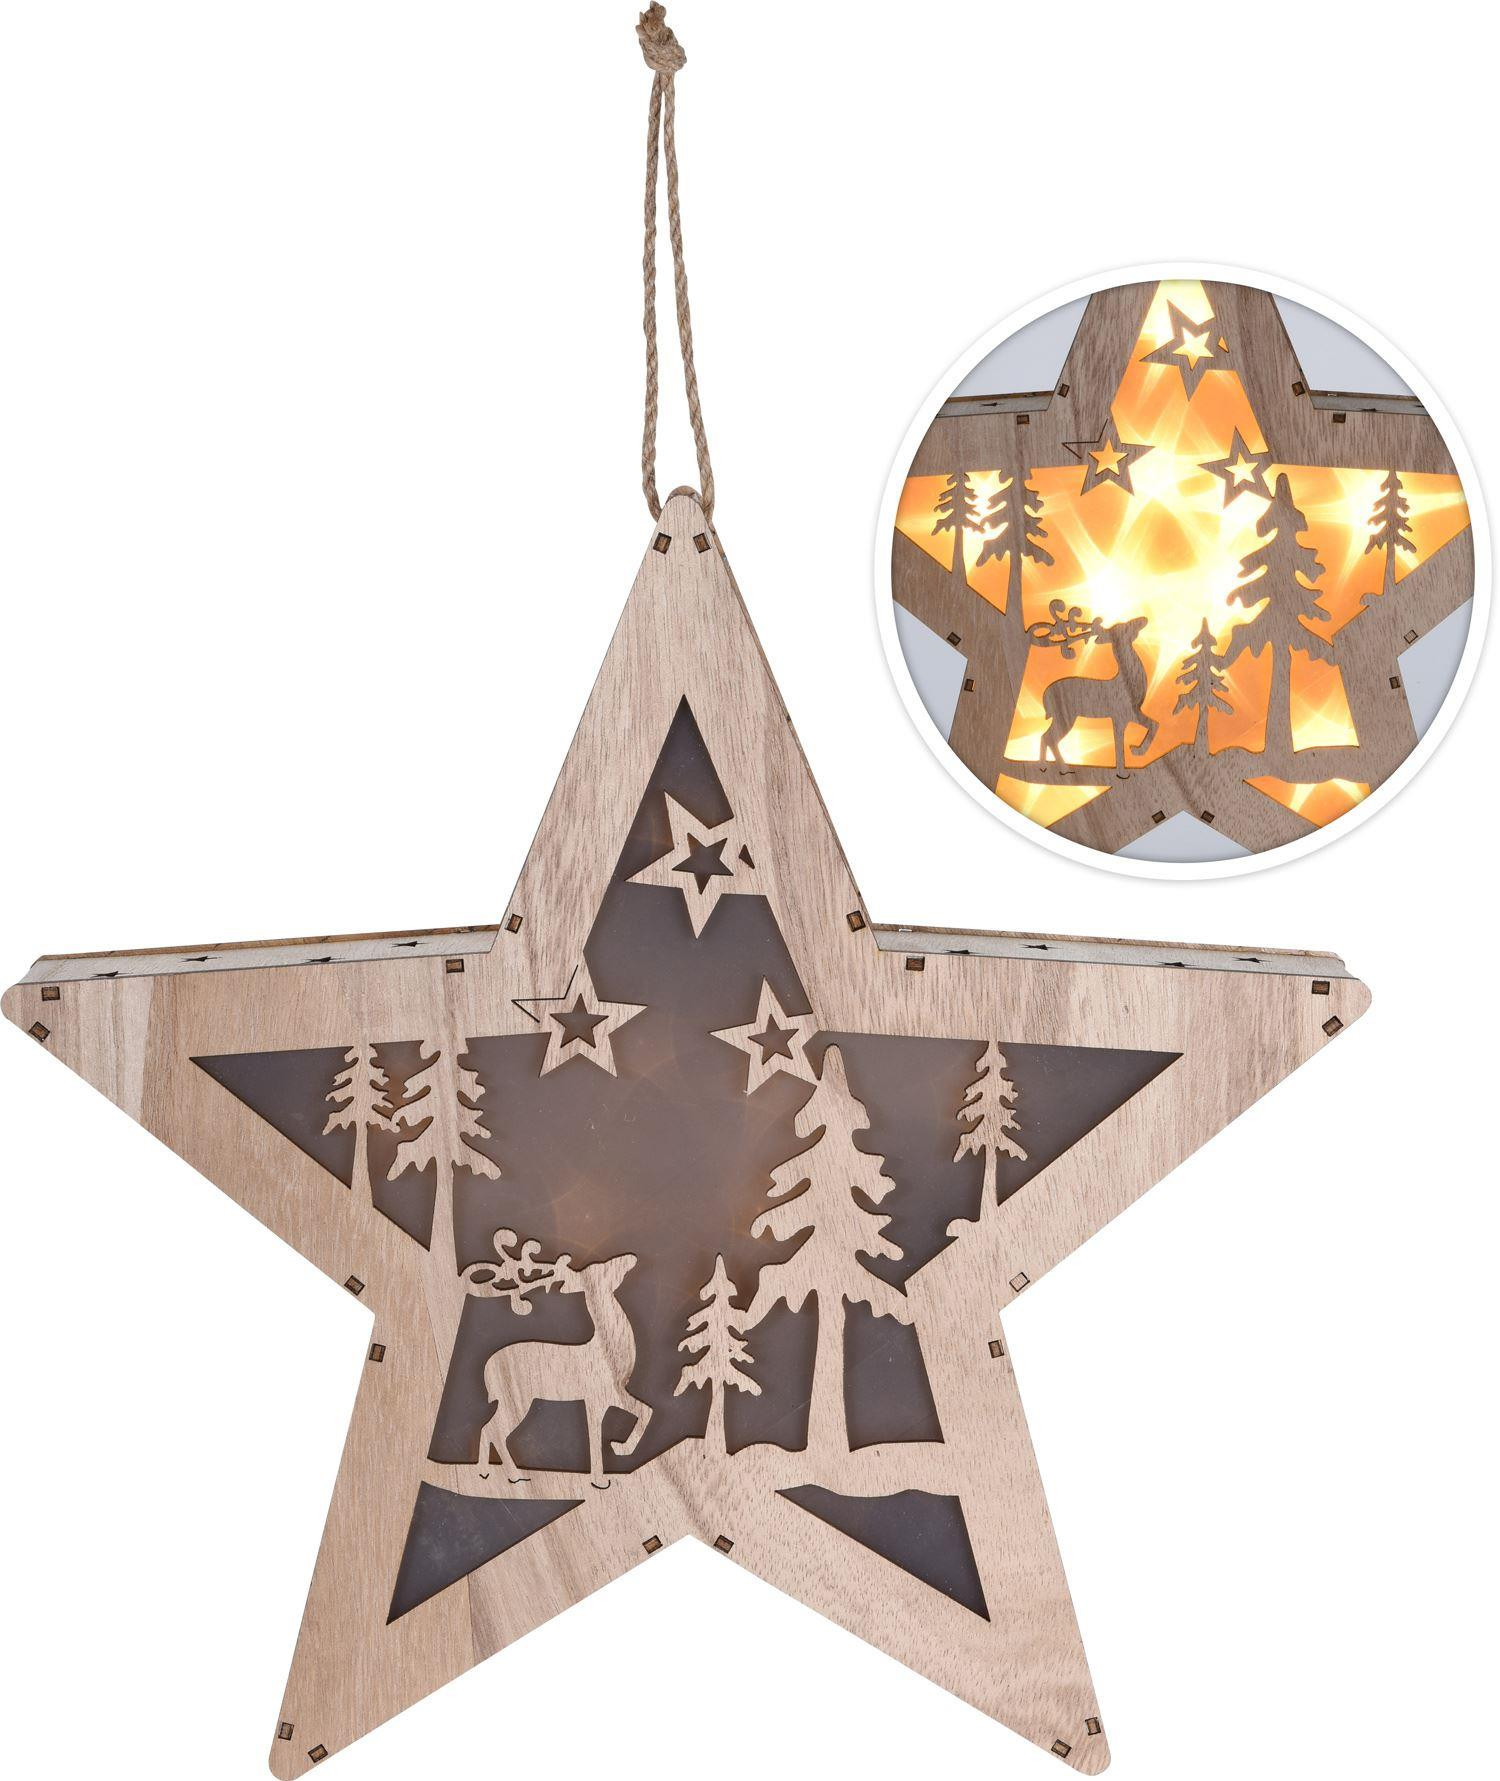 Large Battery Operated Led Light Up Reindeer Woodland Scene Wooden Christmas Star Hanging Fairy Lights Window